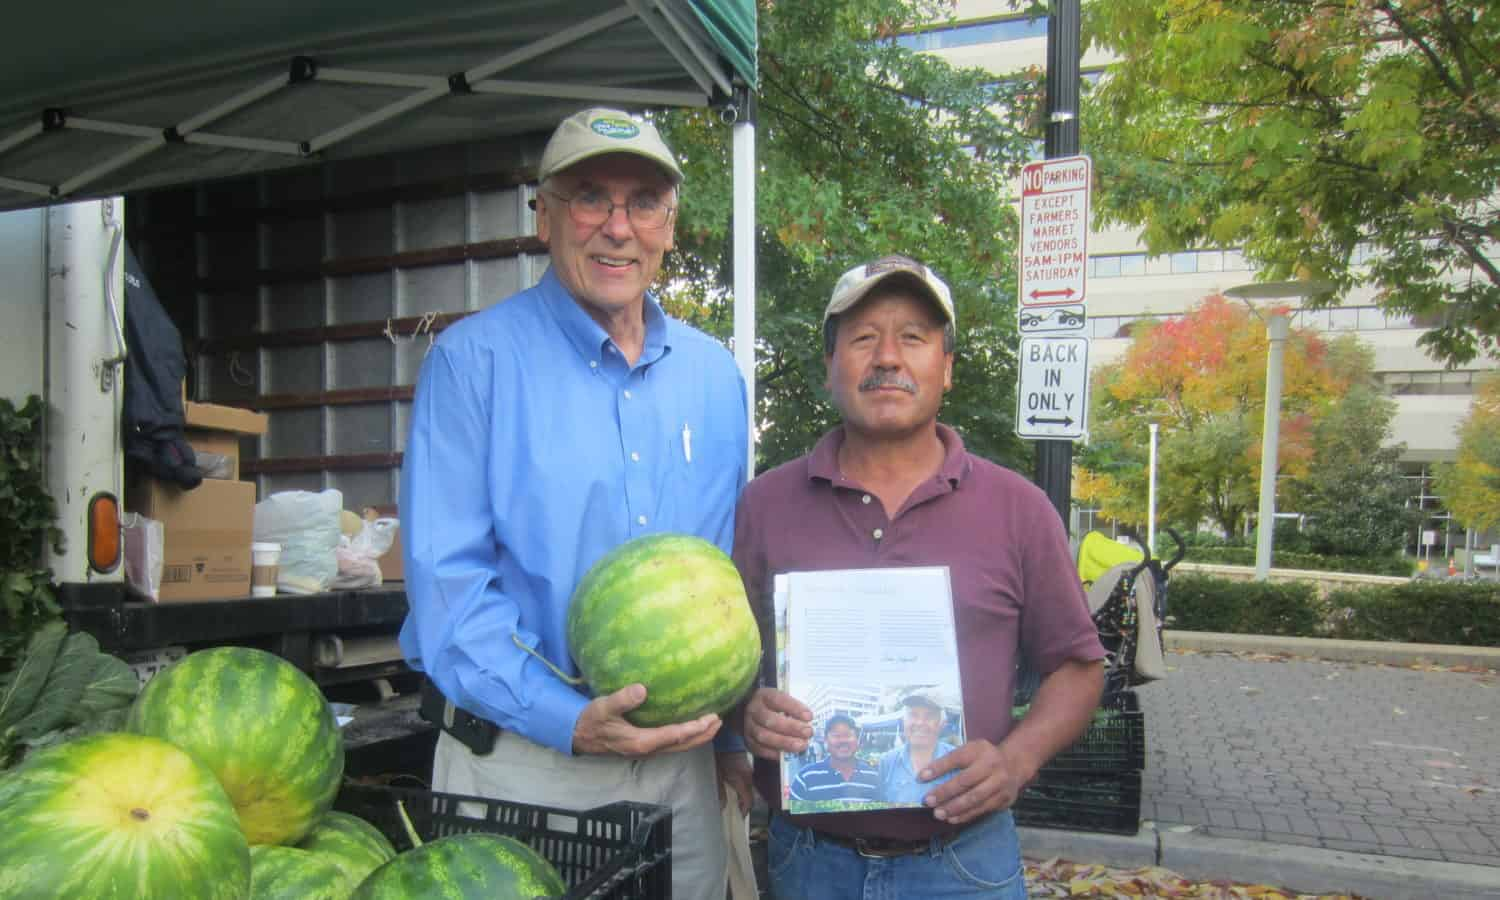 Gus Schumacher, food justice advocate and farmers market proponent, passed away at age 77.